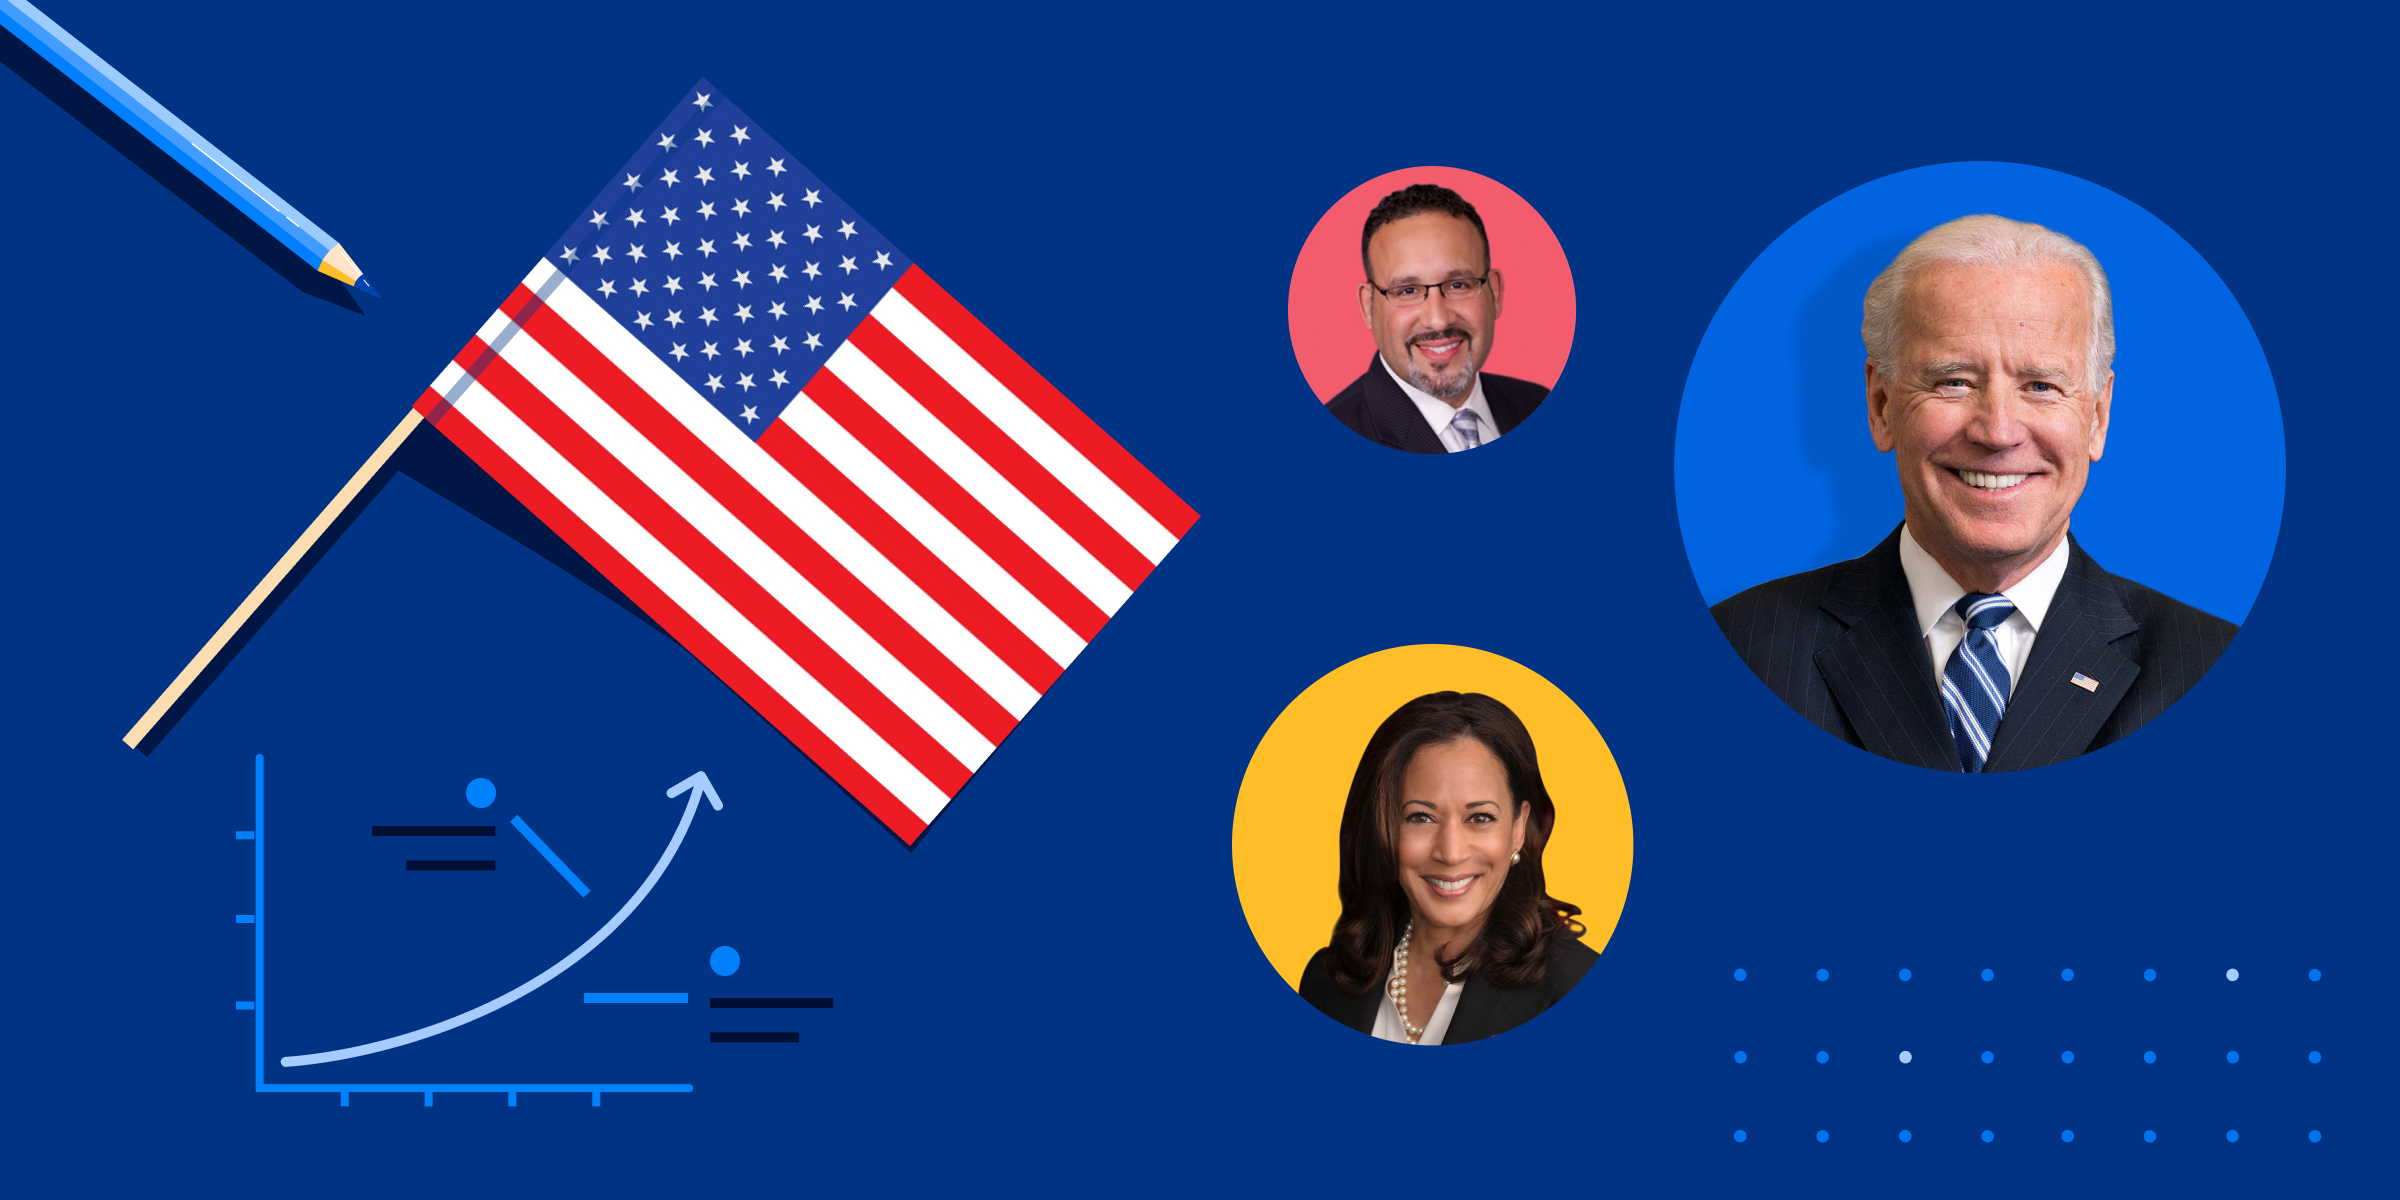 ApplyInsights blog banner featuring President Joe Biden, Vice President Kamala Harris, Secretary of Education Dr. Miguel Cardona, and an American flag